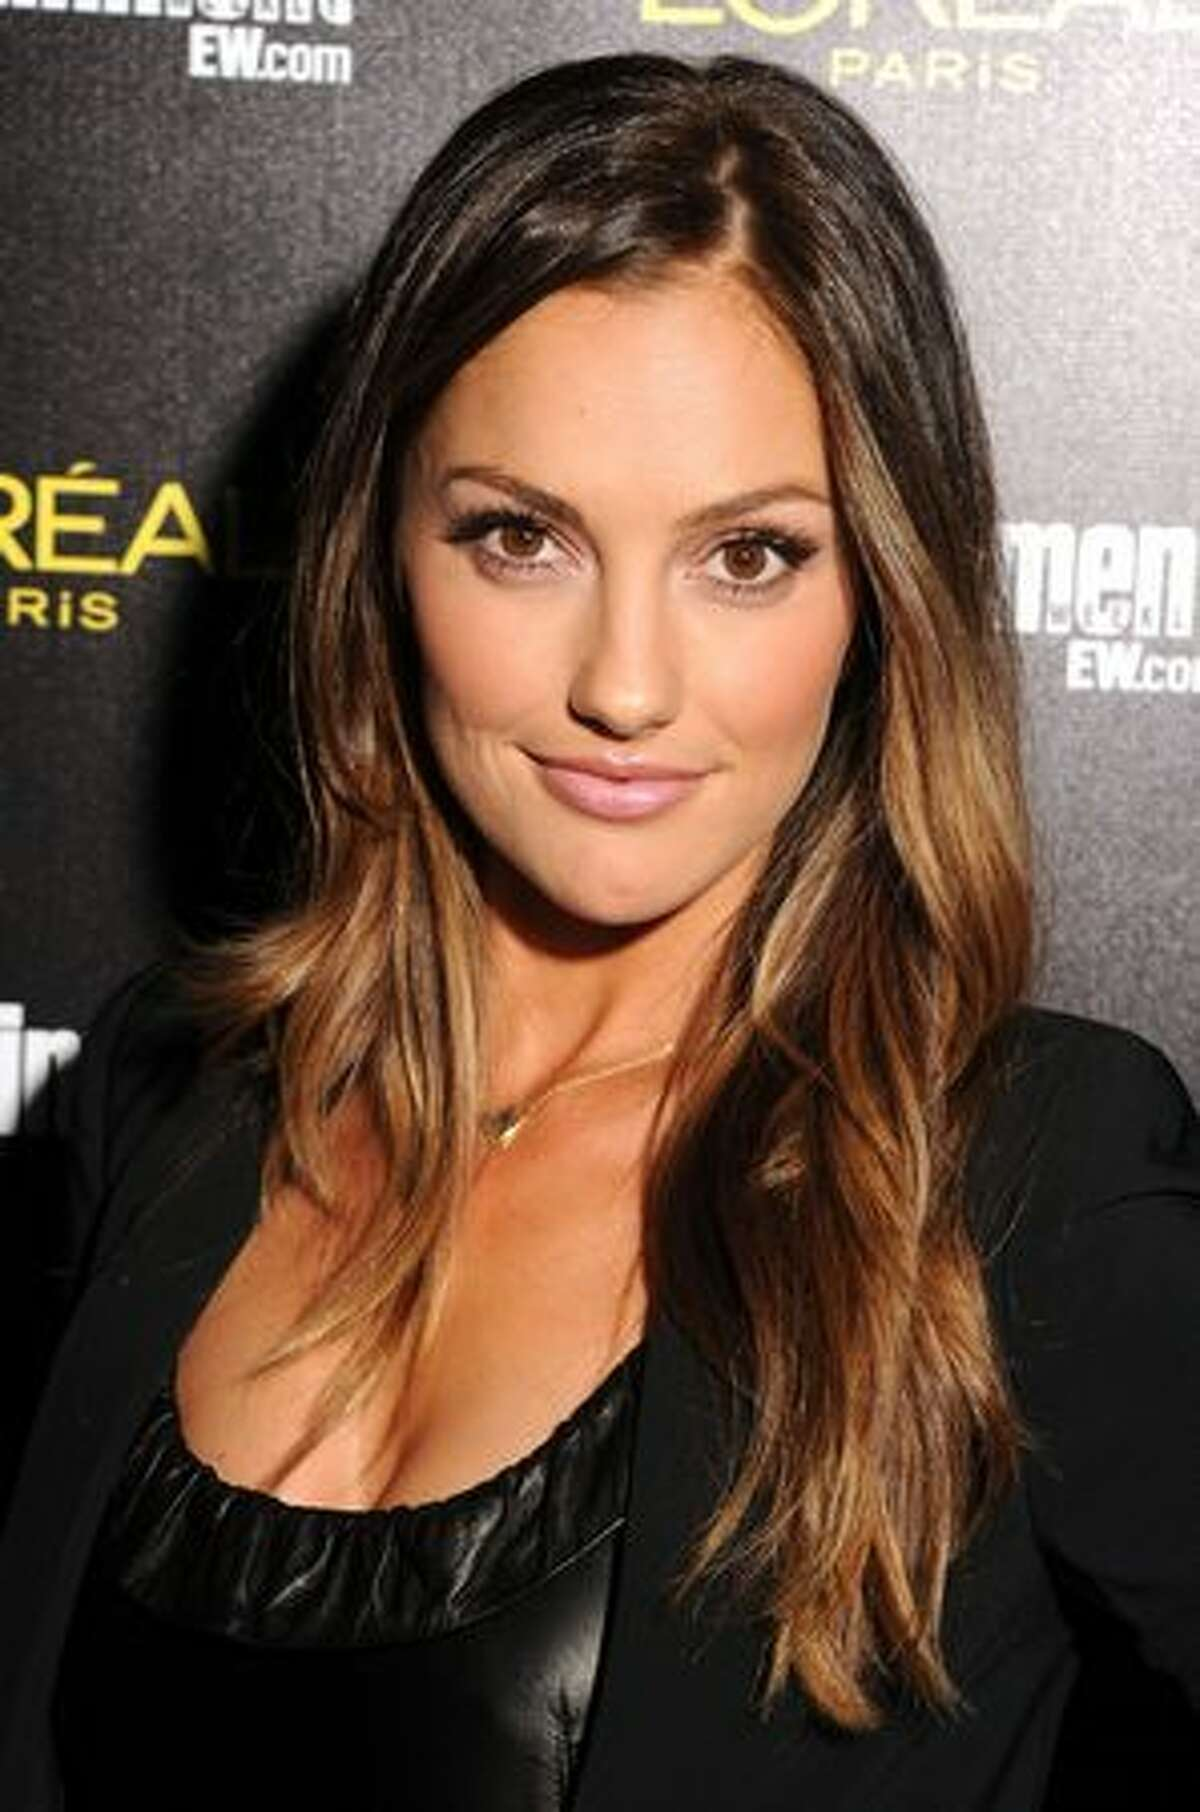 Actress Minka Kelly arrives at Entertainment Weekly's celebration honoring the 17th Annual Screen Actors Guild Awards nominees hosted by Jess Cagle and presented by L'Oreal Paris at Chateau Marmont in Los Angeles, California.